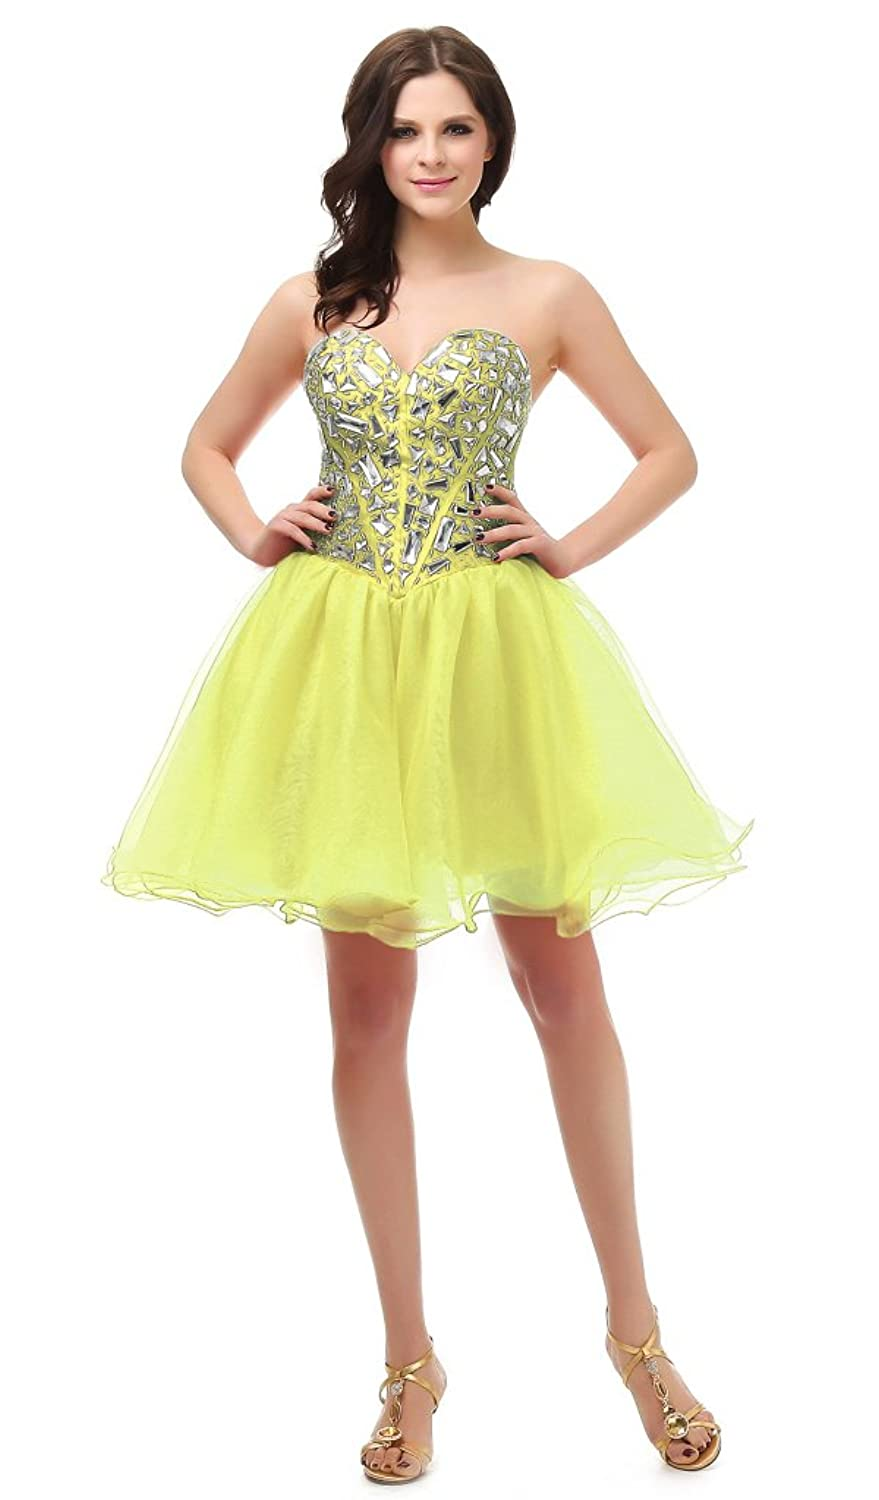 RohmBridal Sweetheart Short Prom Cocktail Party Homecoming Dress